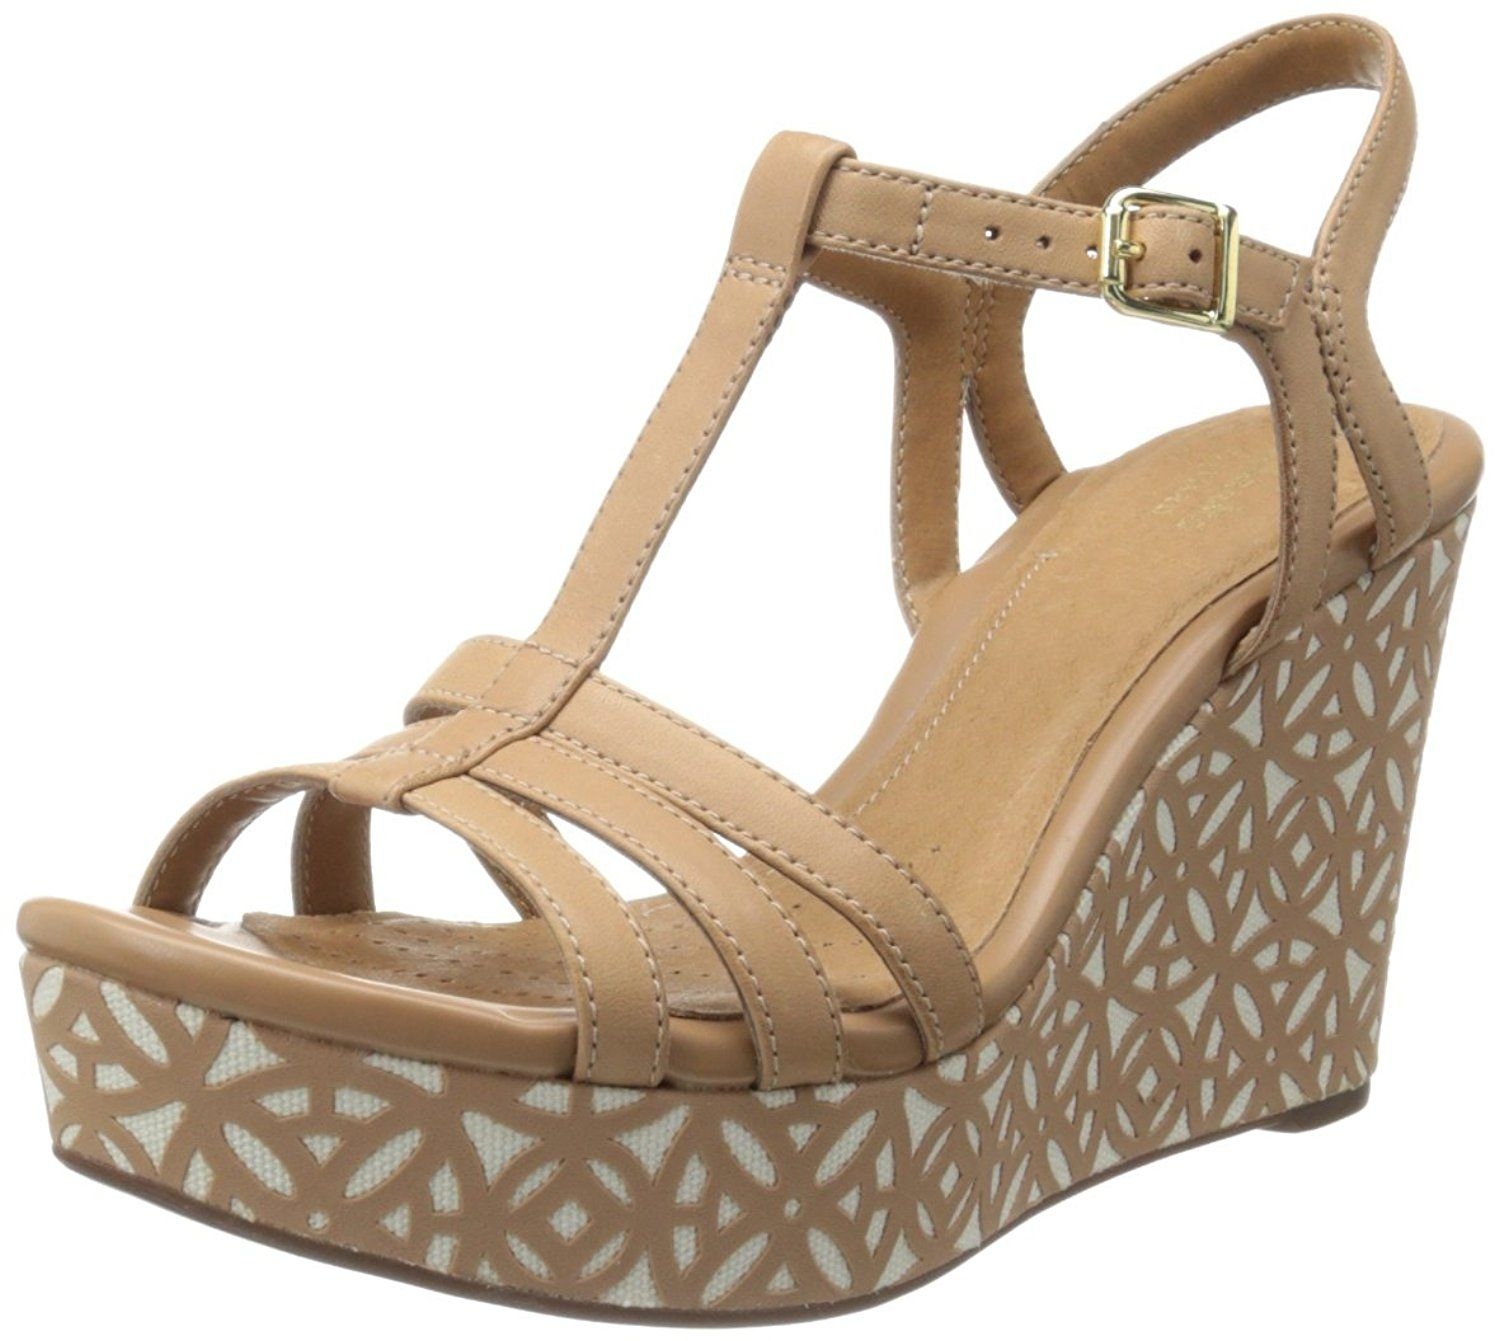 688cd14e5c47 Clarks Women s Amelia Avery Wedge Sandal   For more information ...